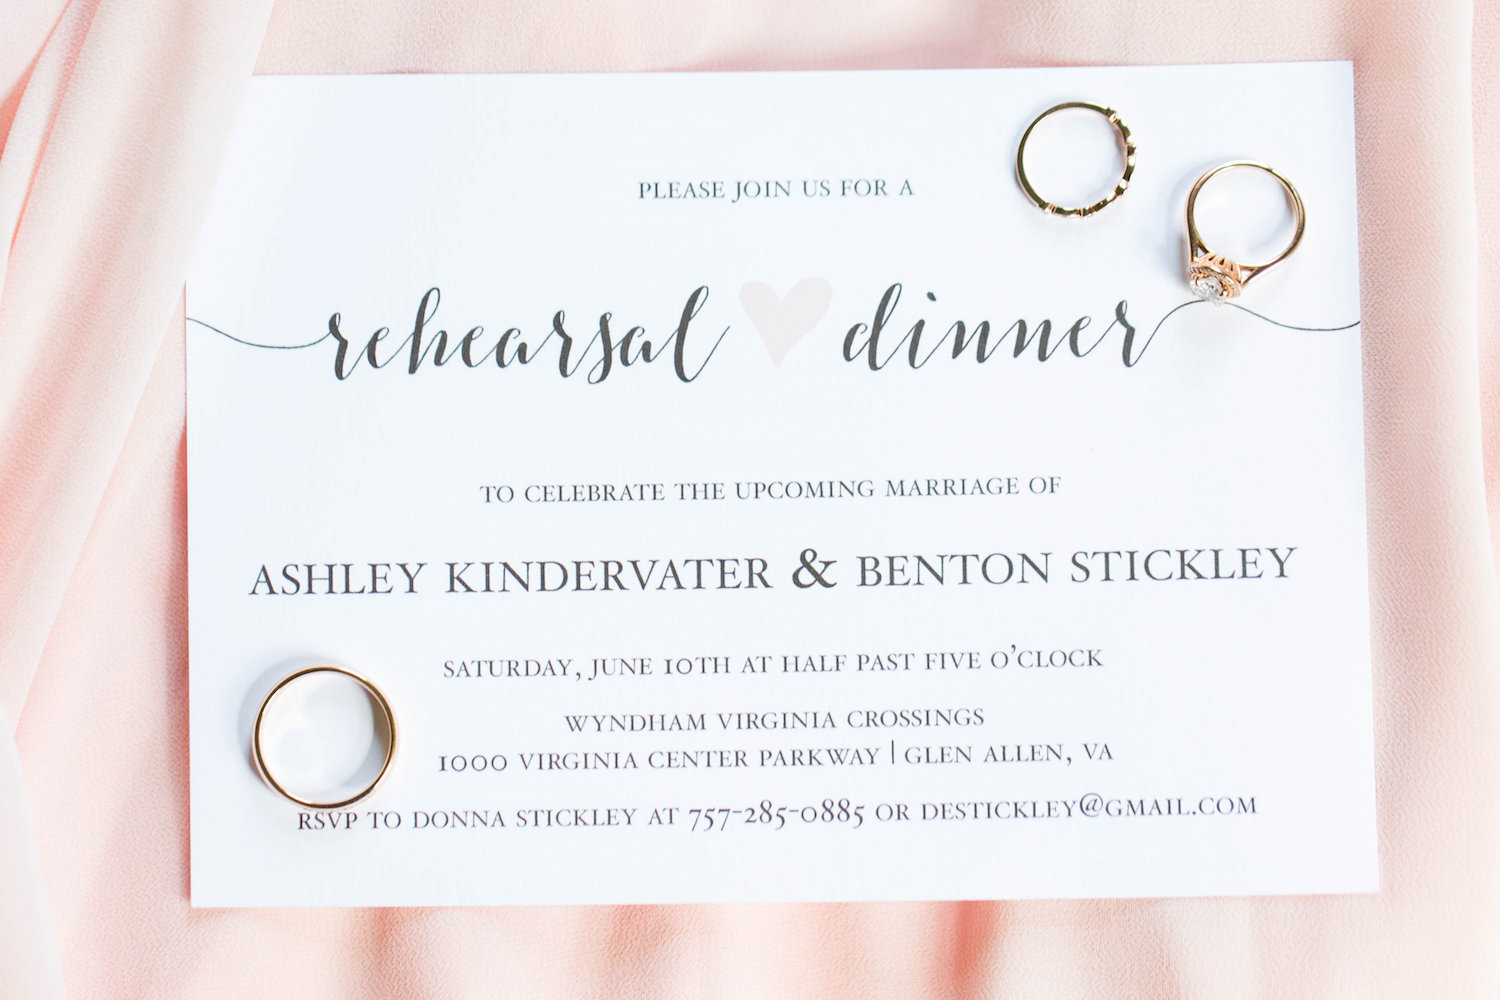 Basic invite online wedding stationery algarve wedding directory if you are looking to plan a wedding party and using basic invite as your invitation station dont forget to use code 15ff51 for 15 off everything stopboris Gallery